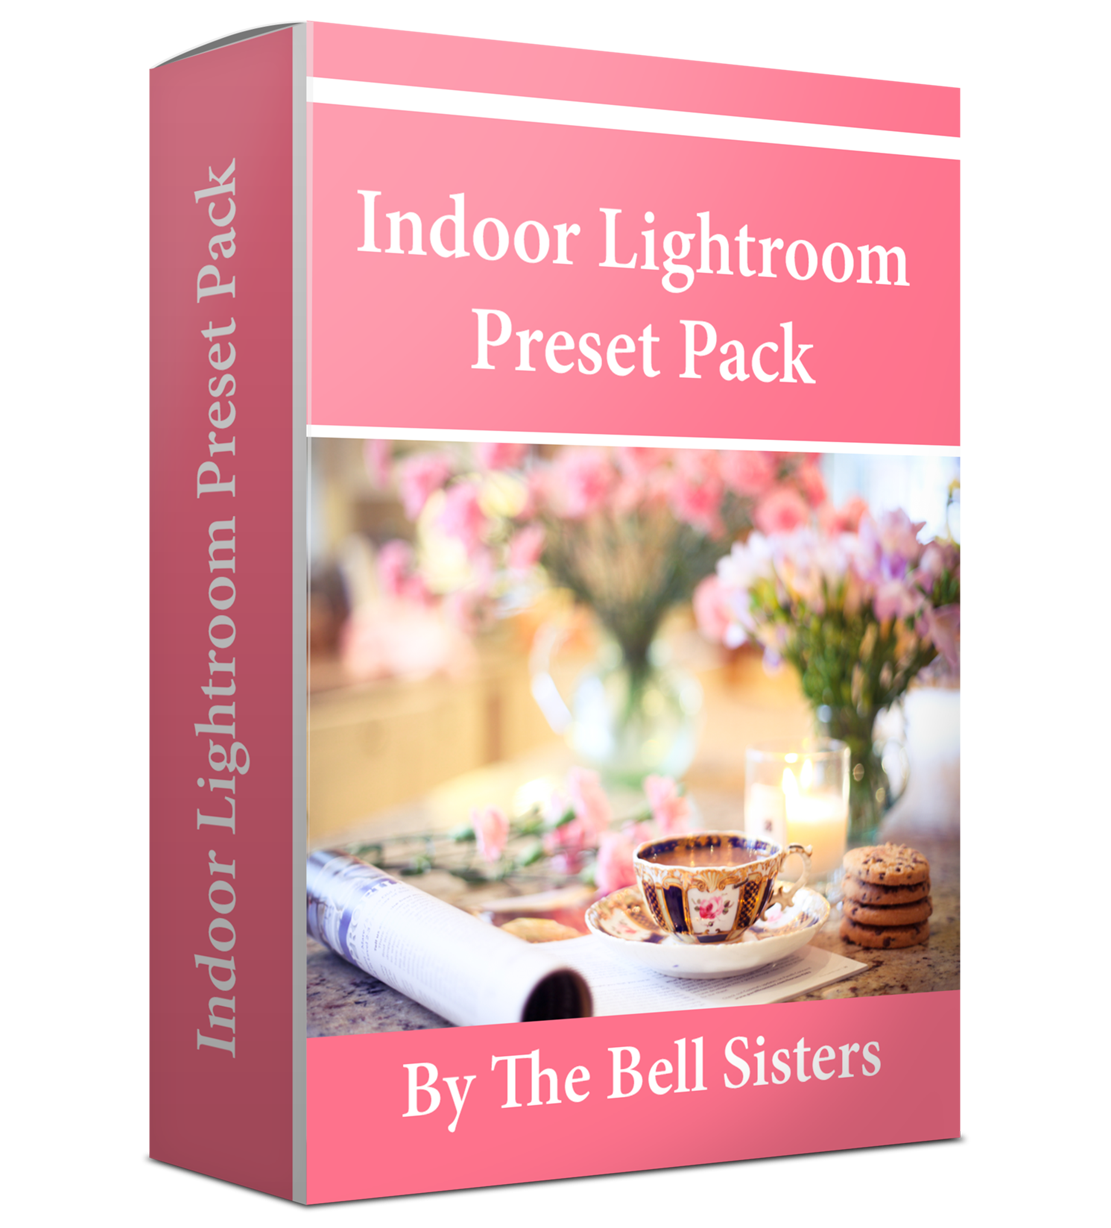 Indoor Lightroom Preset Pack